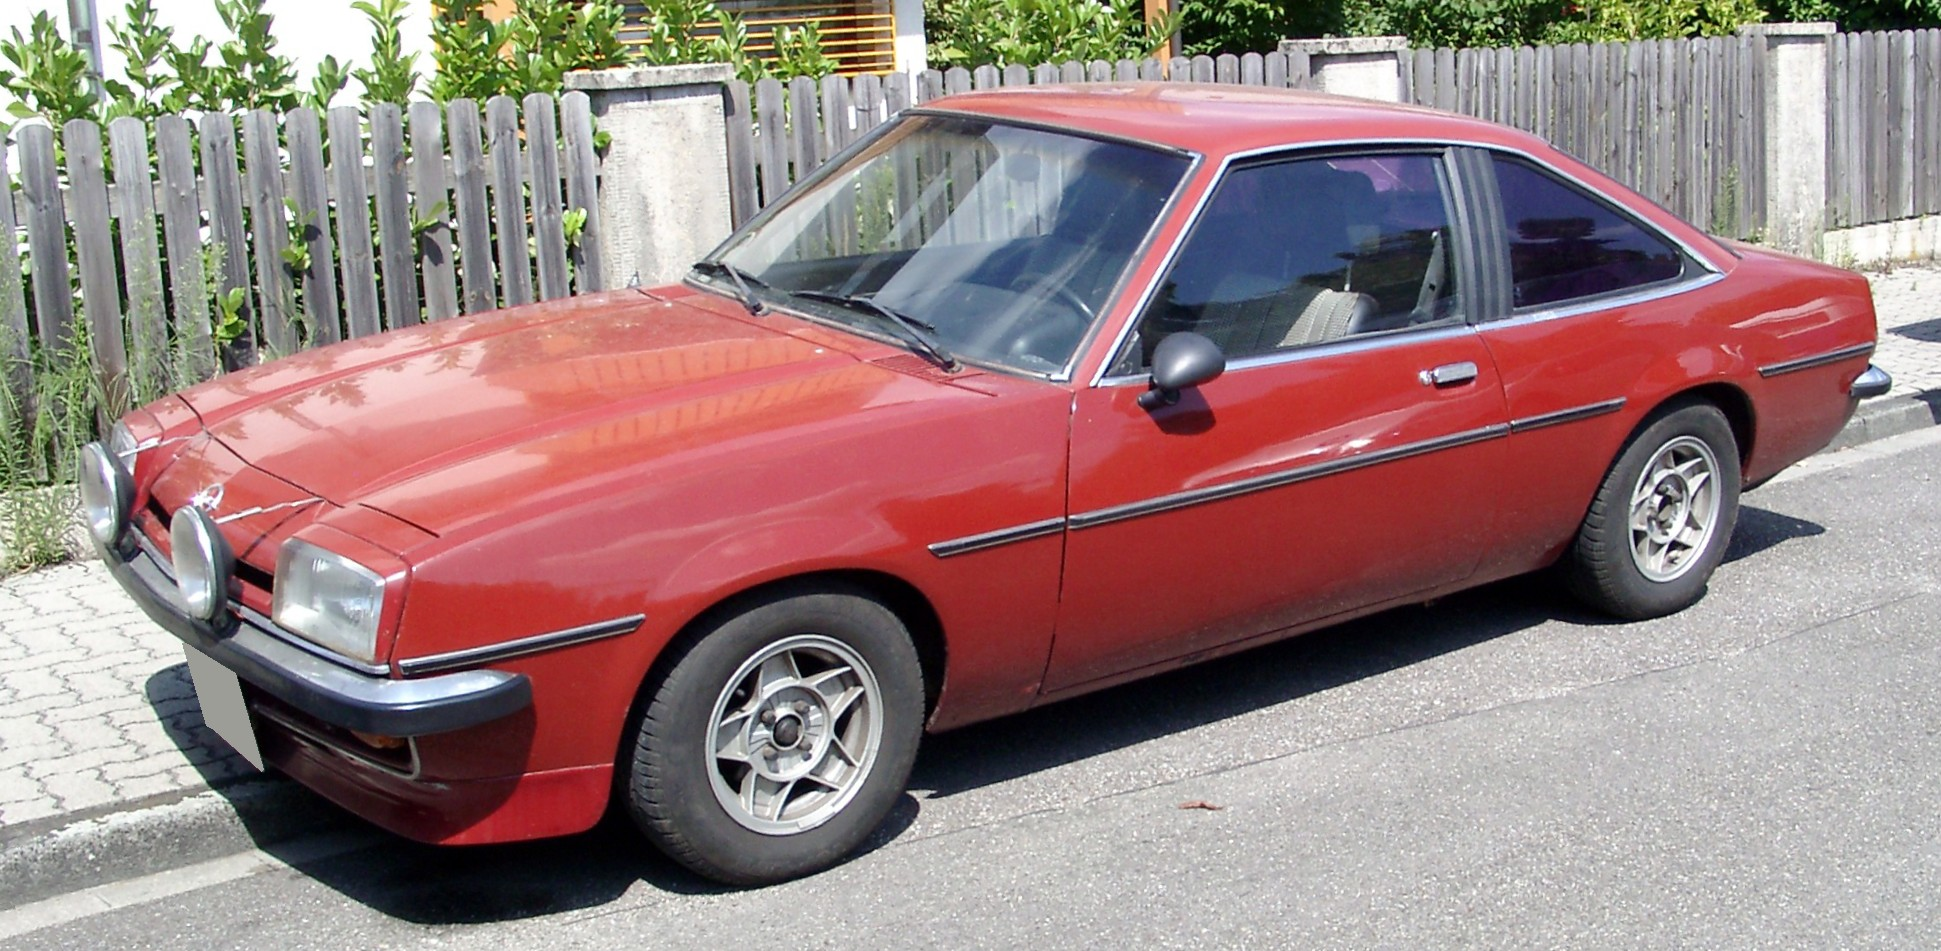 What If Opel Resurrected The Manta Coupe Would It Make For An Kadett B Wiring Diagram Https Uploadwikimediaorg Wikipedia Commons 8 8d Front 20080723